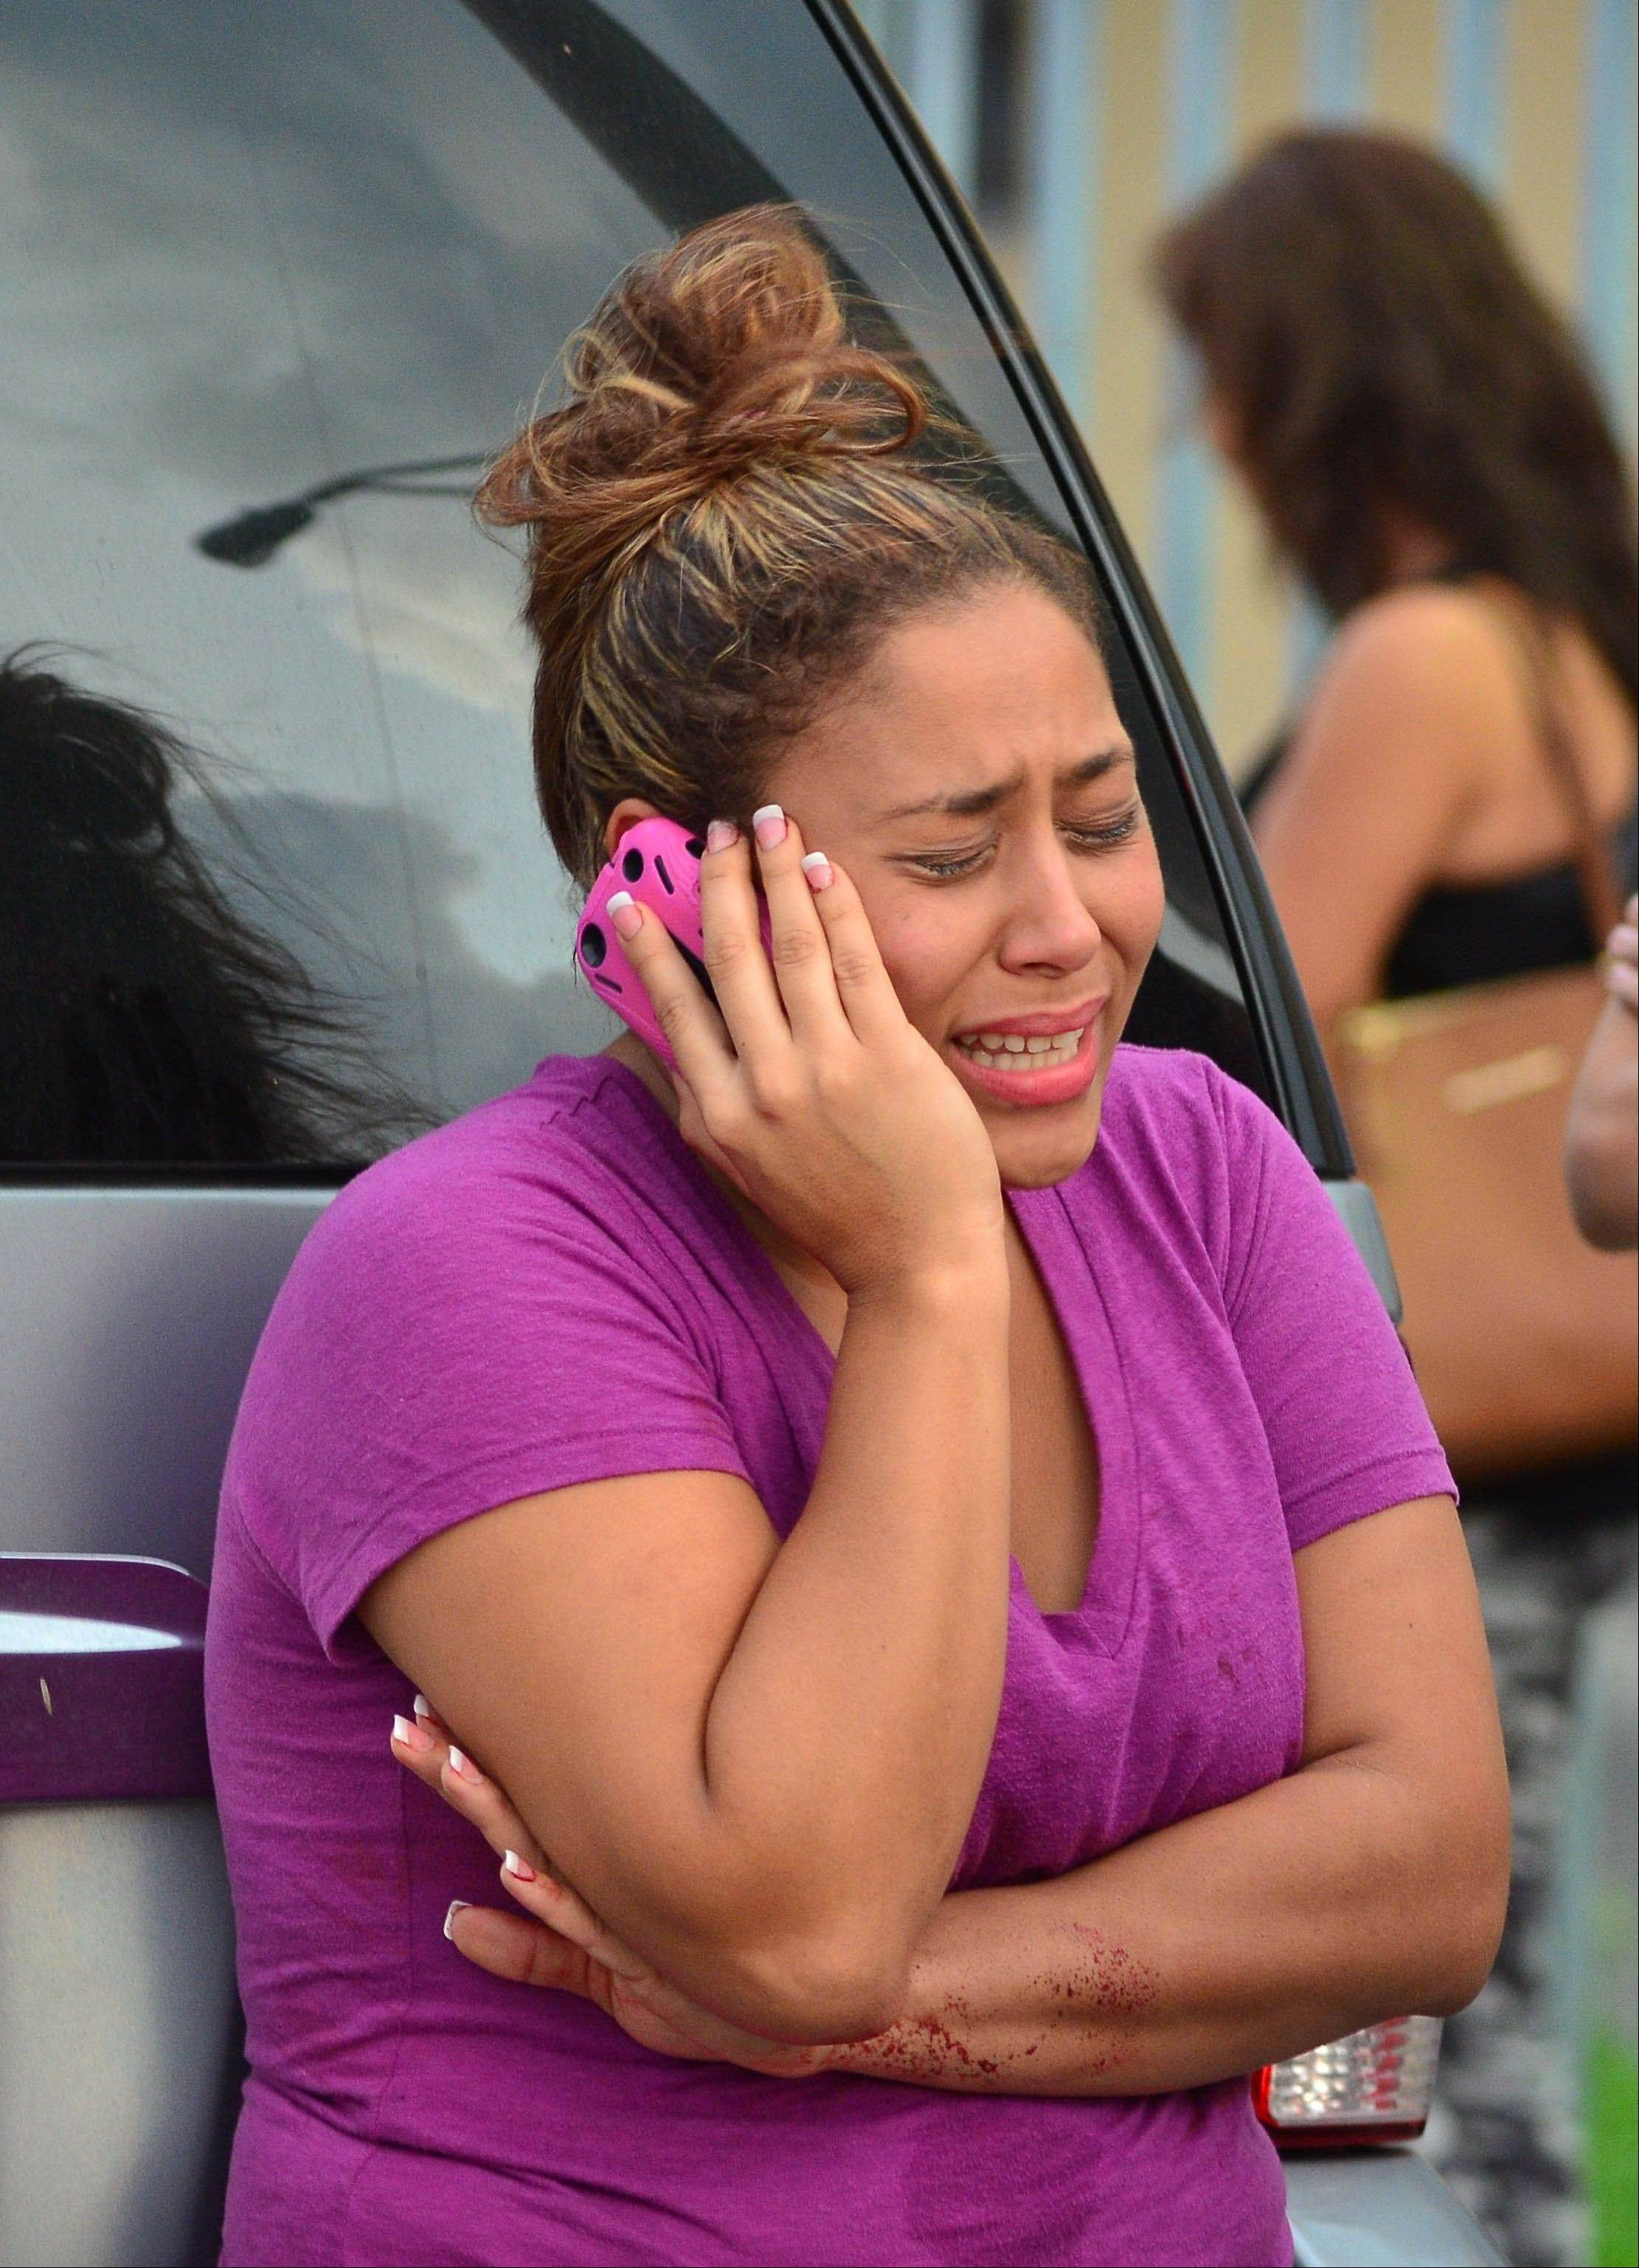 A woman talks on the phone outside an apartment building at the scene of a fatal shooting in Hialeah, Fla., early Saturday, July 27. A gunman holding hostages inside the apartment complex killed six people before being shot to death by a SWAT team that stormed the building early Saturday following an hours-long standoff, police said.